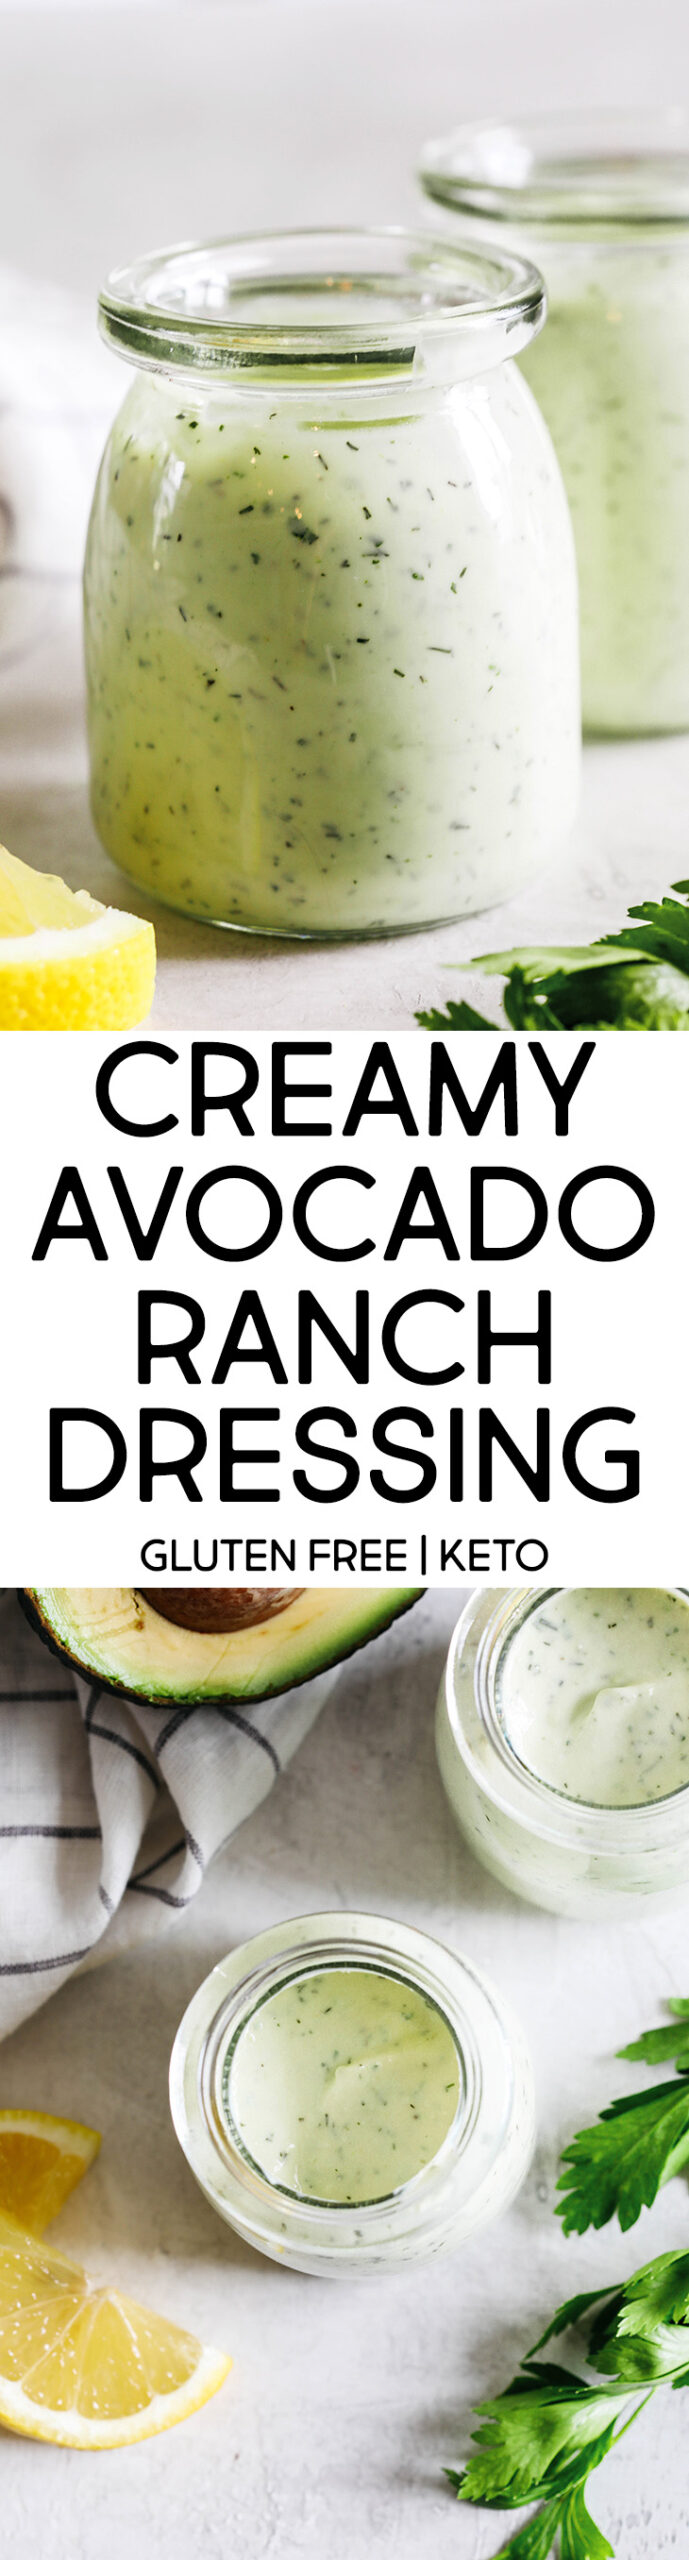 Creamy Avocado Ranch Dressing made healthier with Greek yogurt easily made in just 5 minutes with so much delicious flavor!  Perfect for salads, dips for veggies, and more!